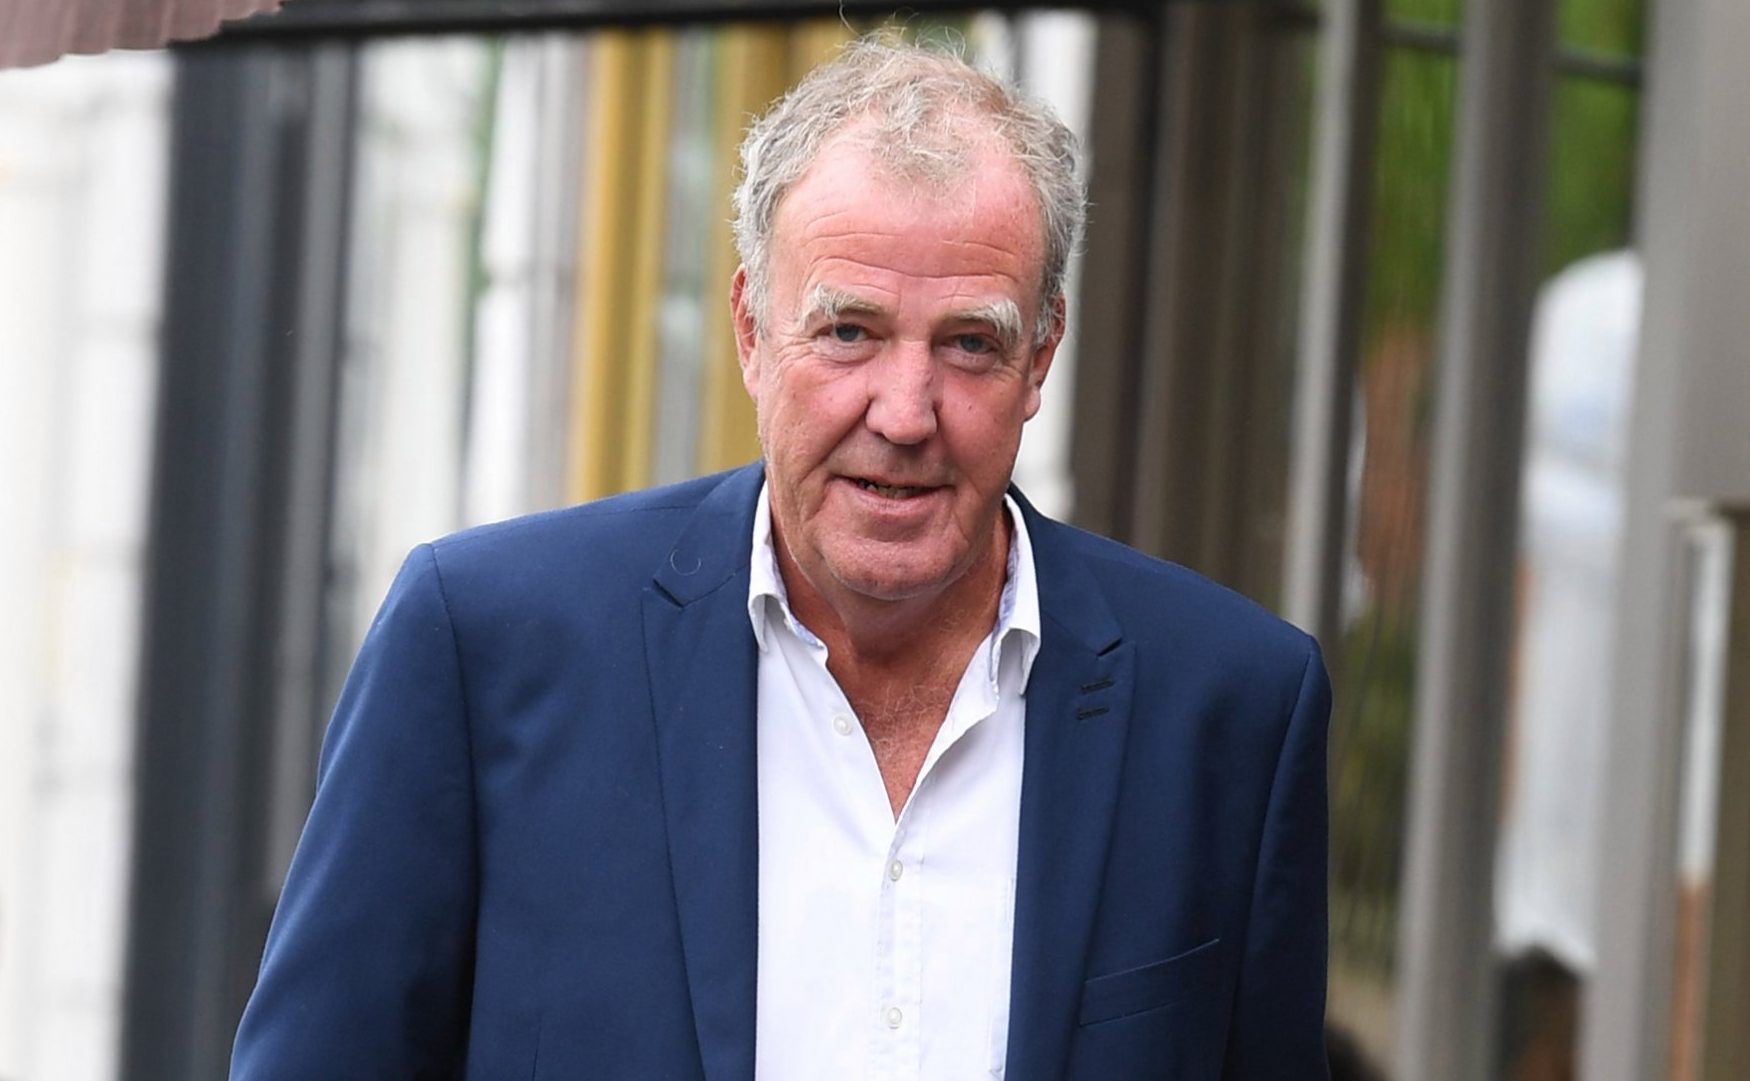 Jeremy Clarkson enjoys heatwave as he catches up with friend after wrapping The Grand Tour